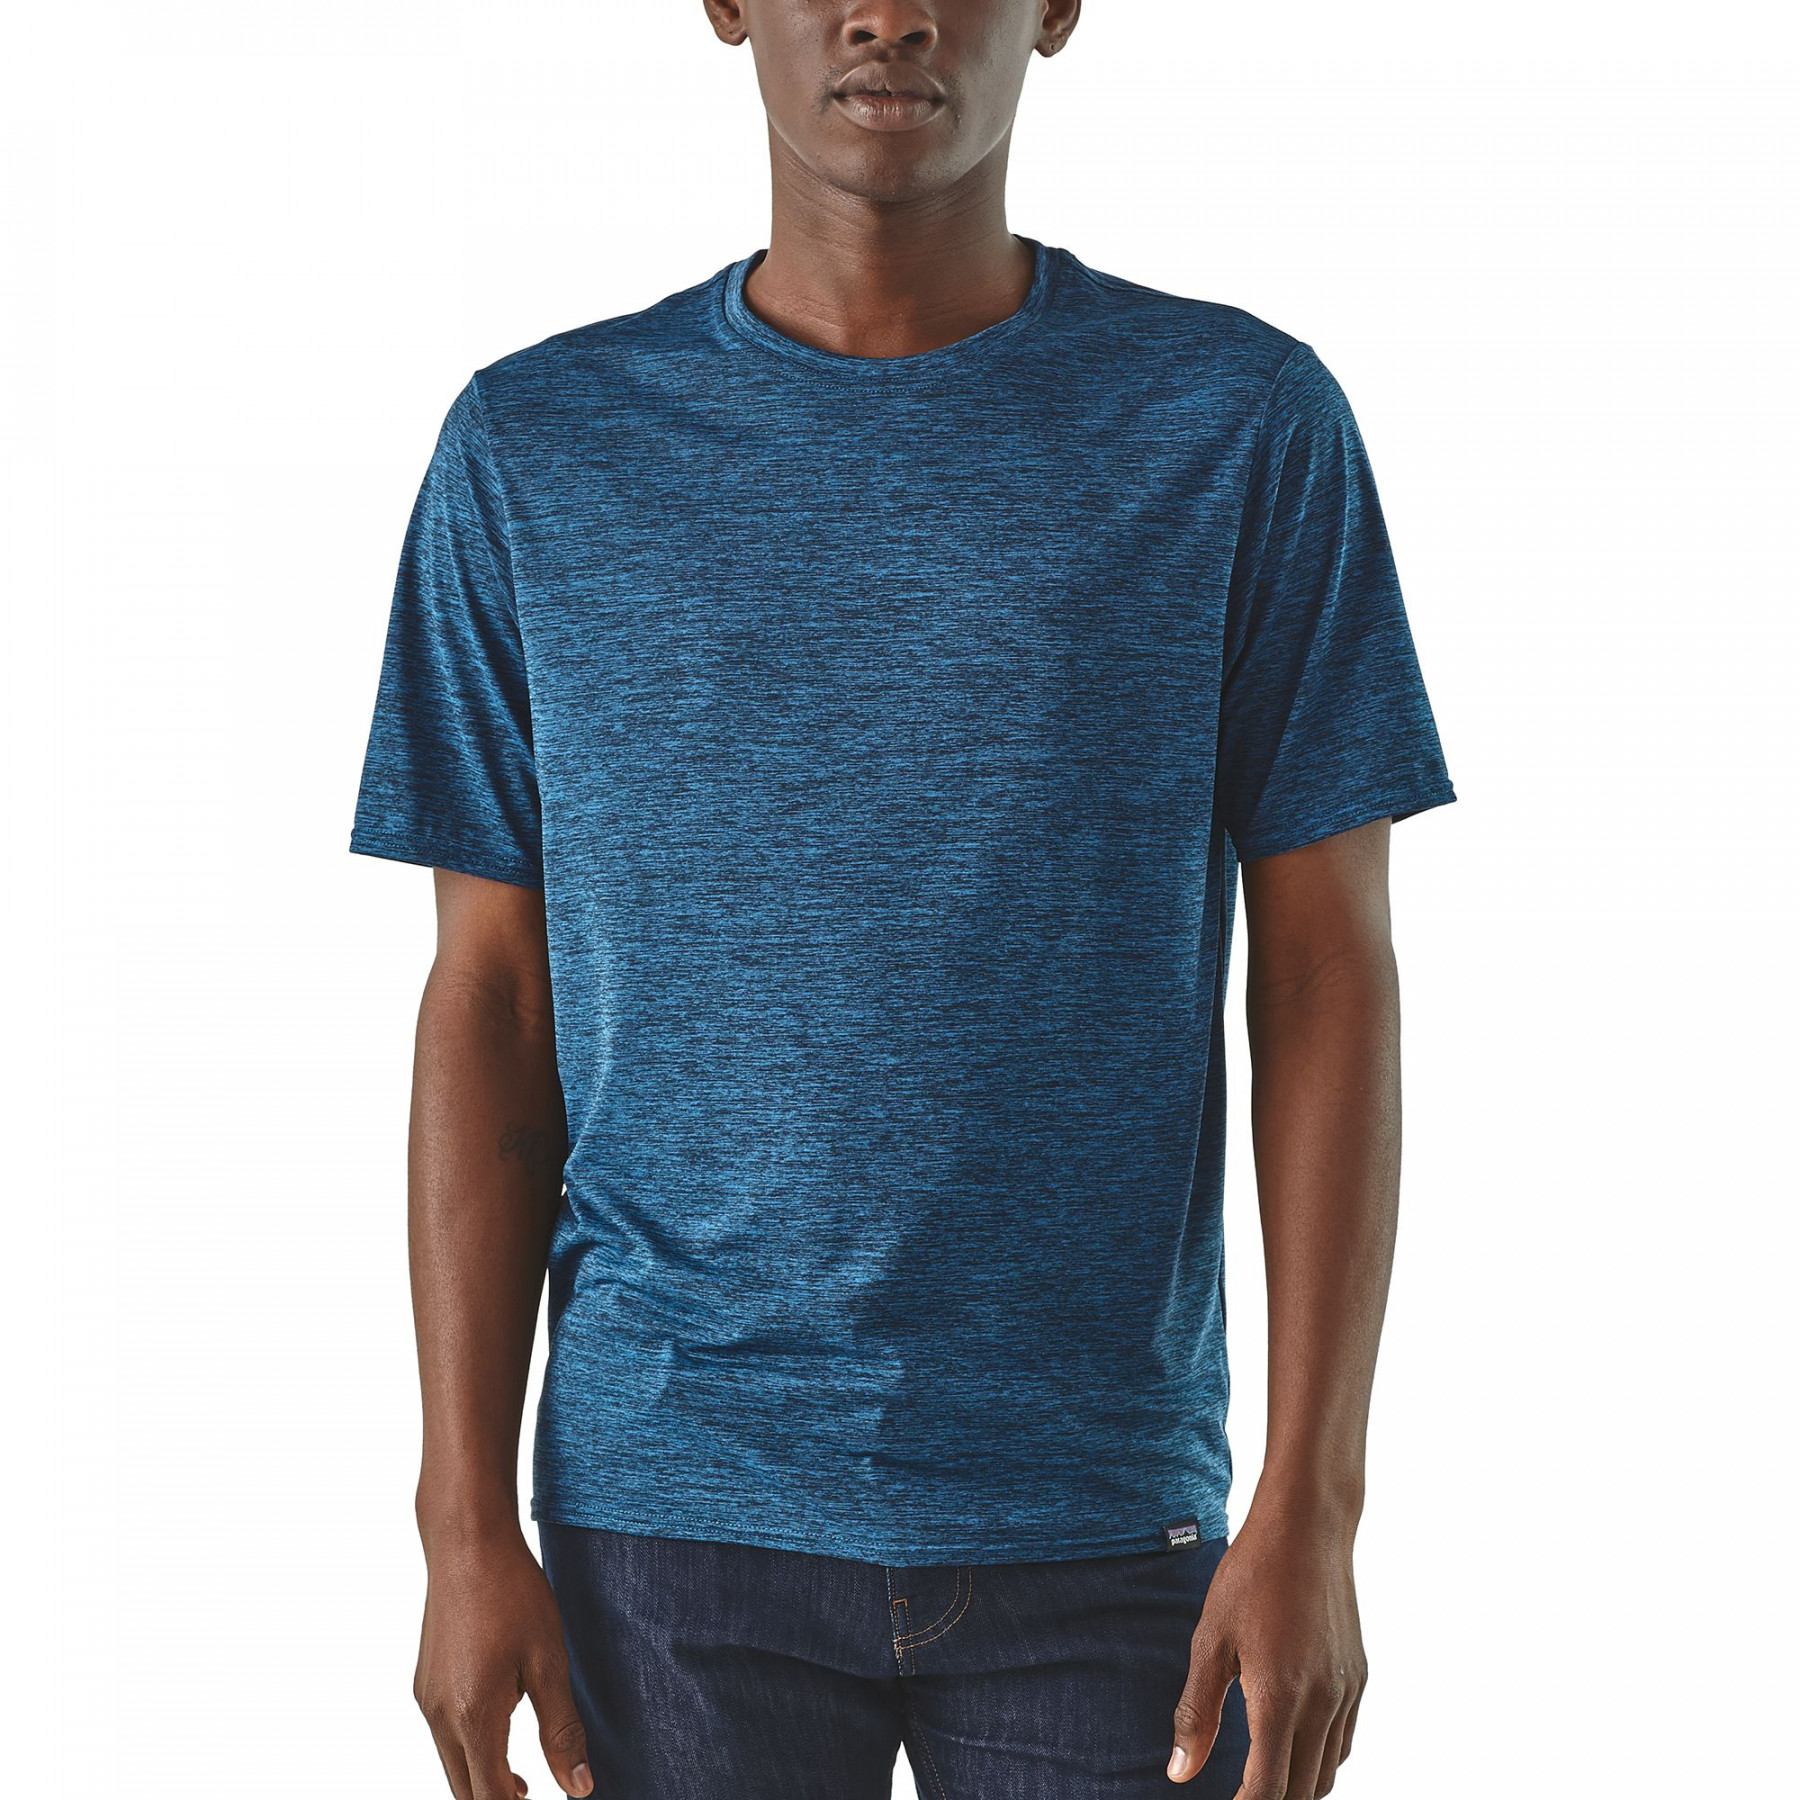 T-shirt Men's Capilene Cool Daily Shirt Bleu 1